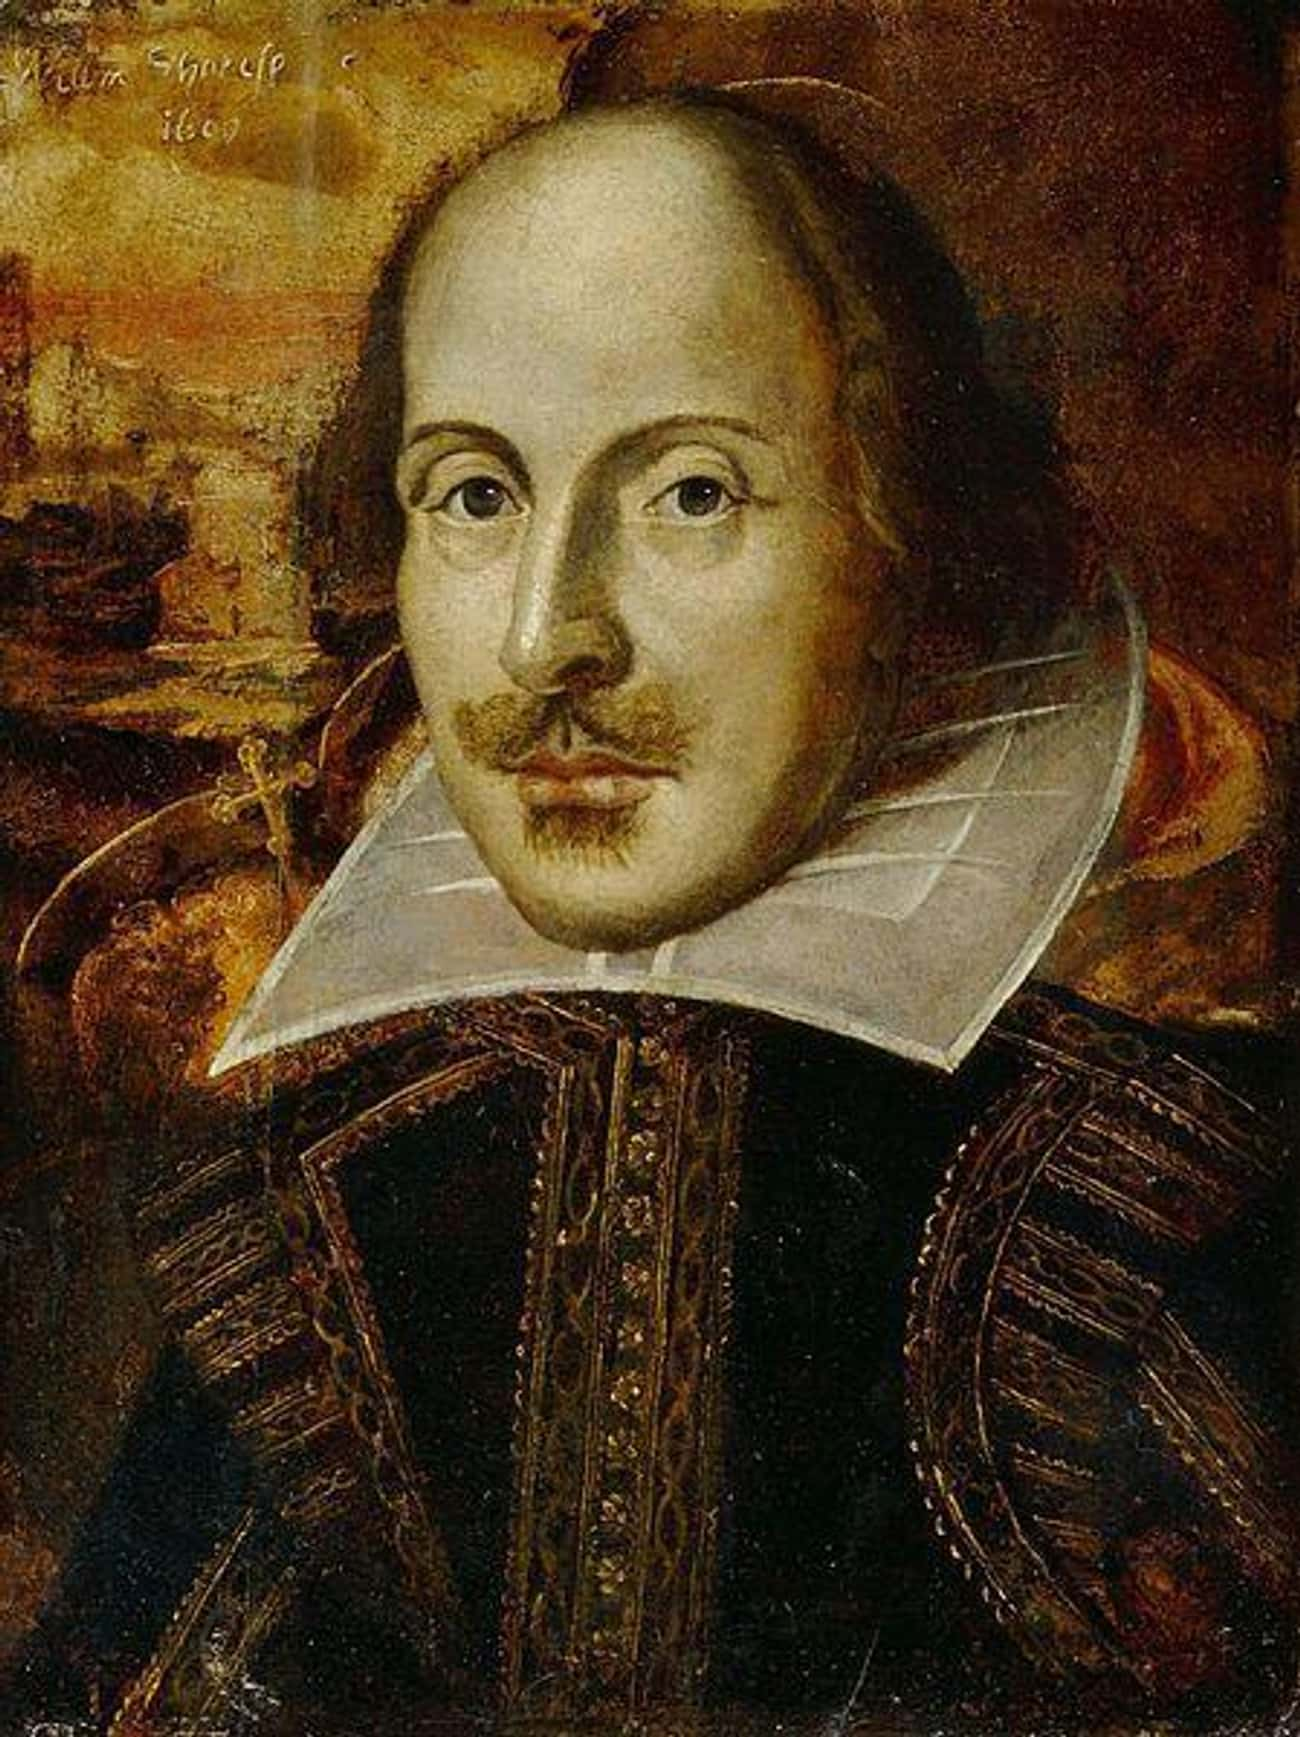 William Shakespeare - April 23, 1564-1616